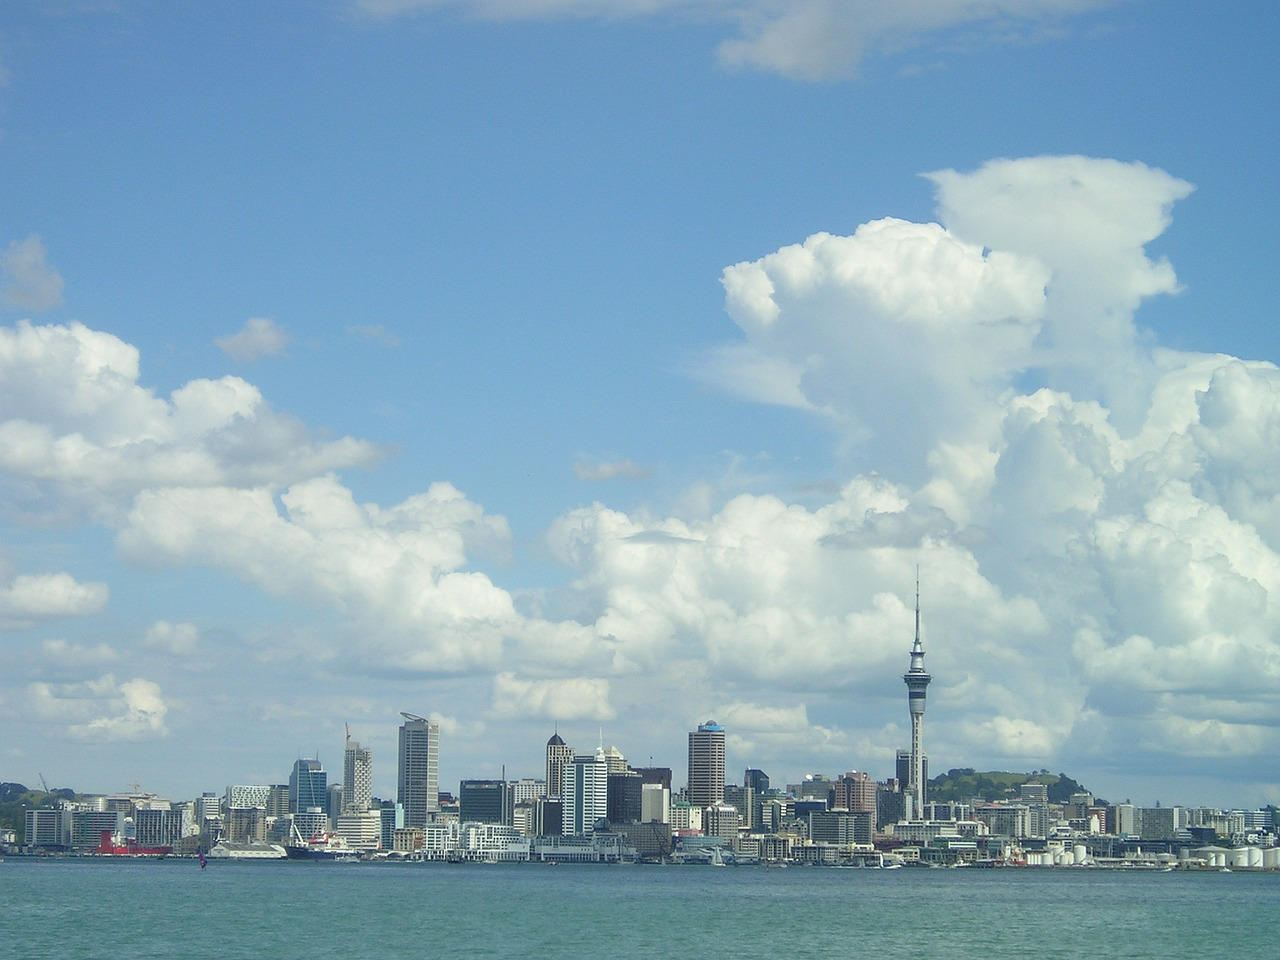 new zealand,auckland,city,skyline,skyscraper,free pictures, free photos, free images, royalty free, free illustrations, public domain